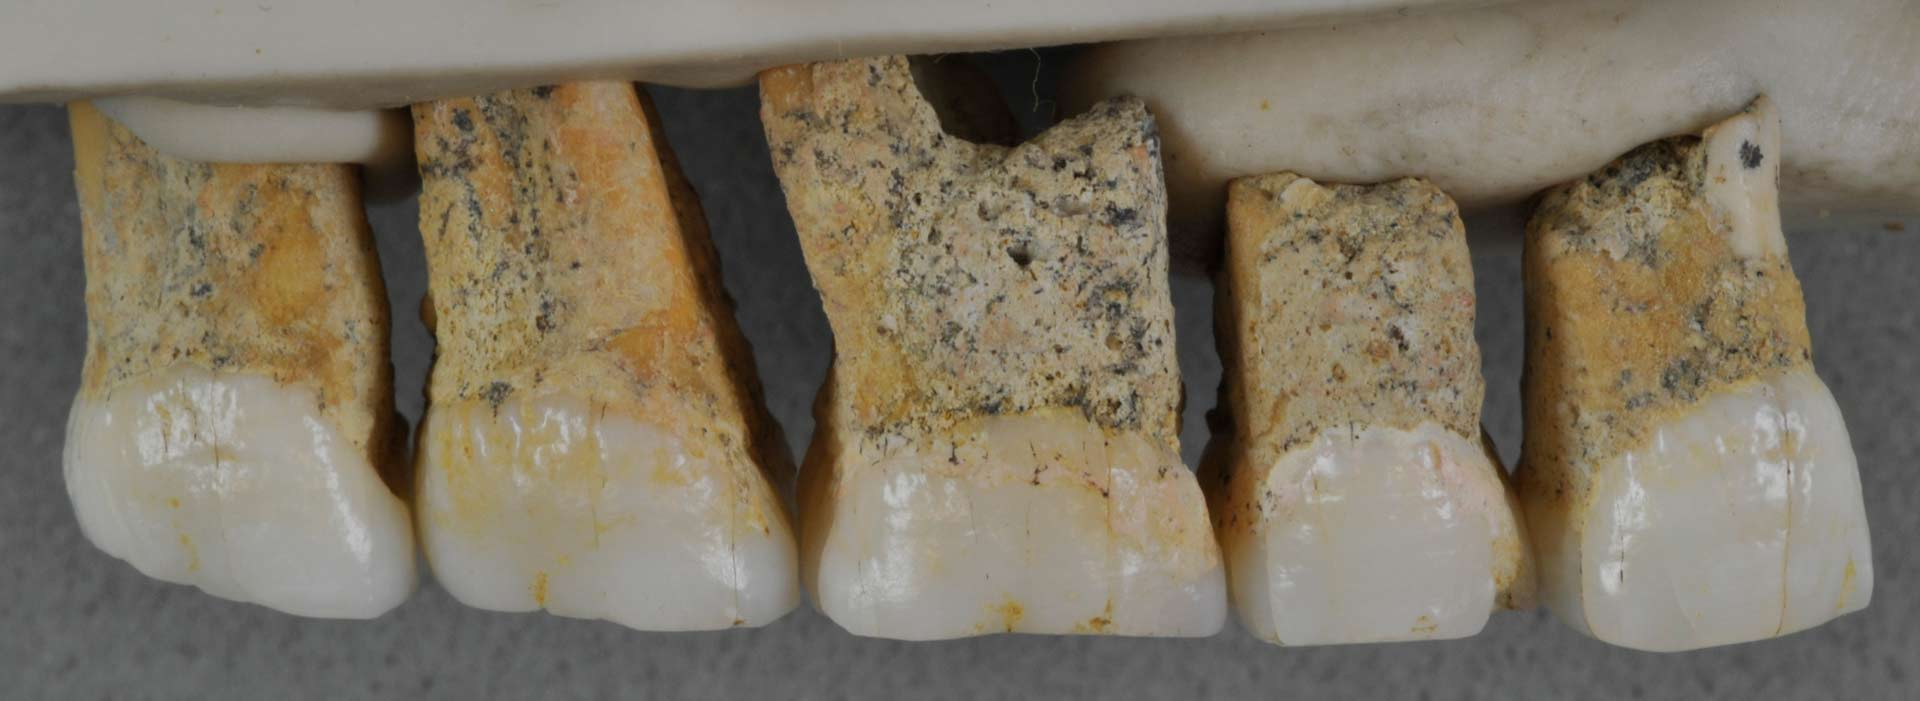 luzon teeth